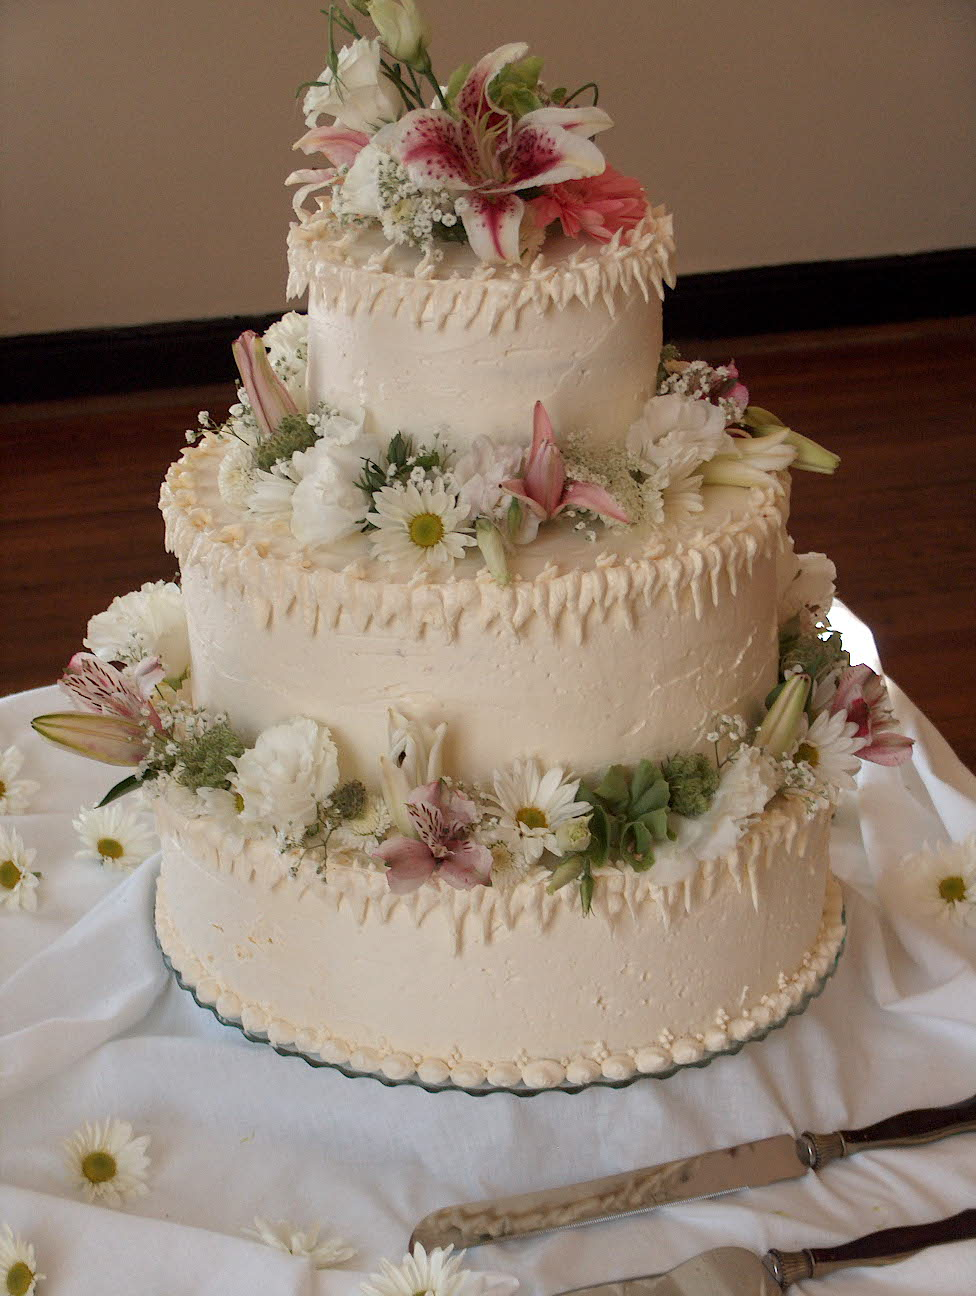 eileens bakery and cafe wedding cake with butter cream frosting